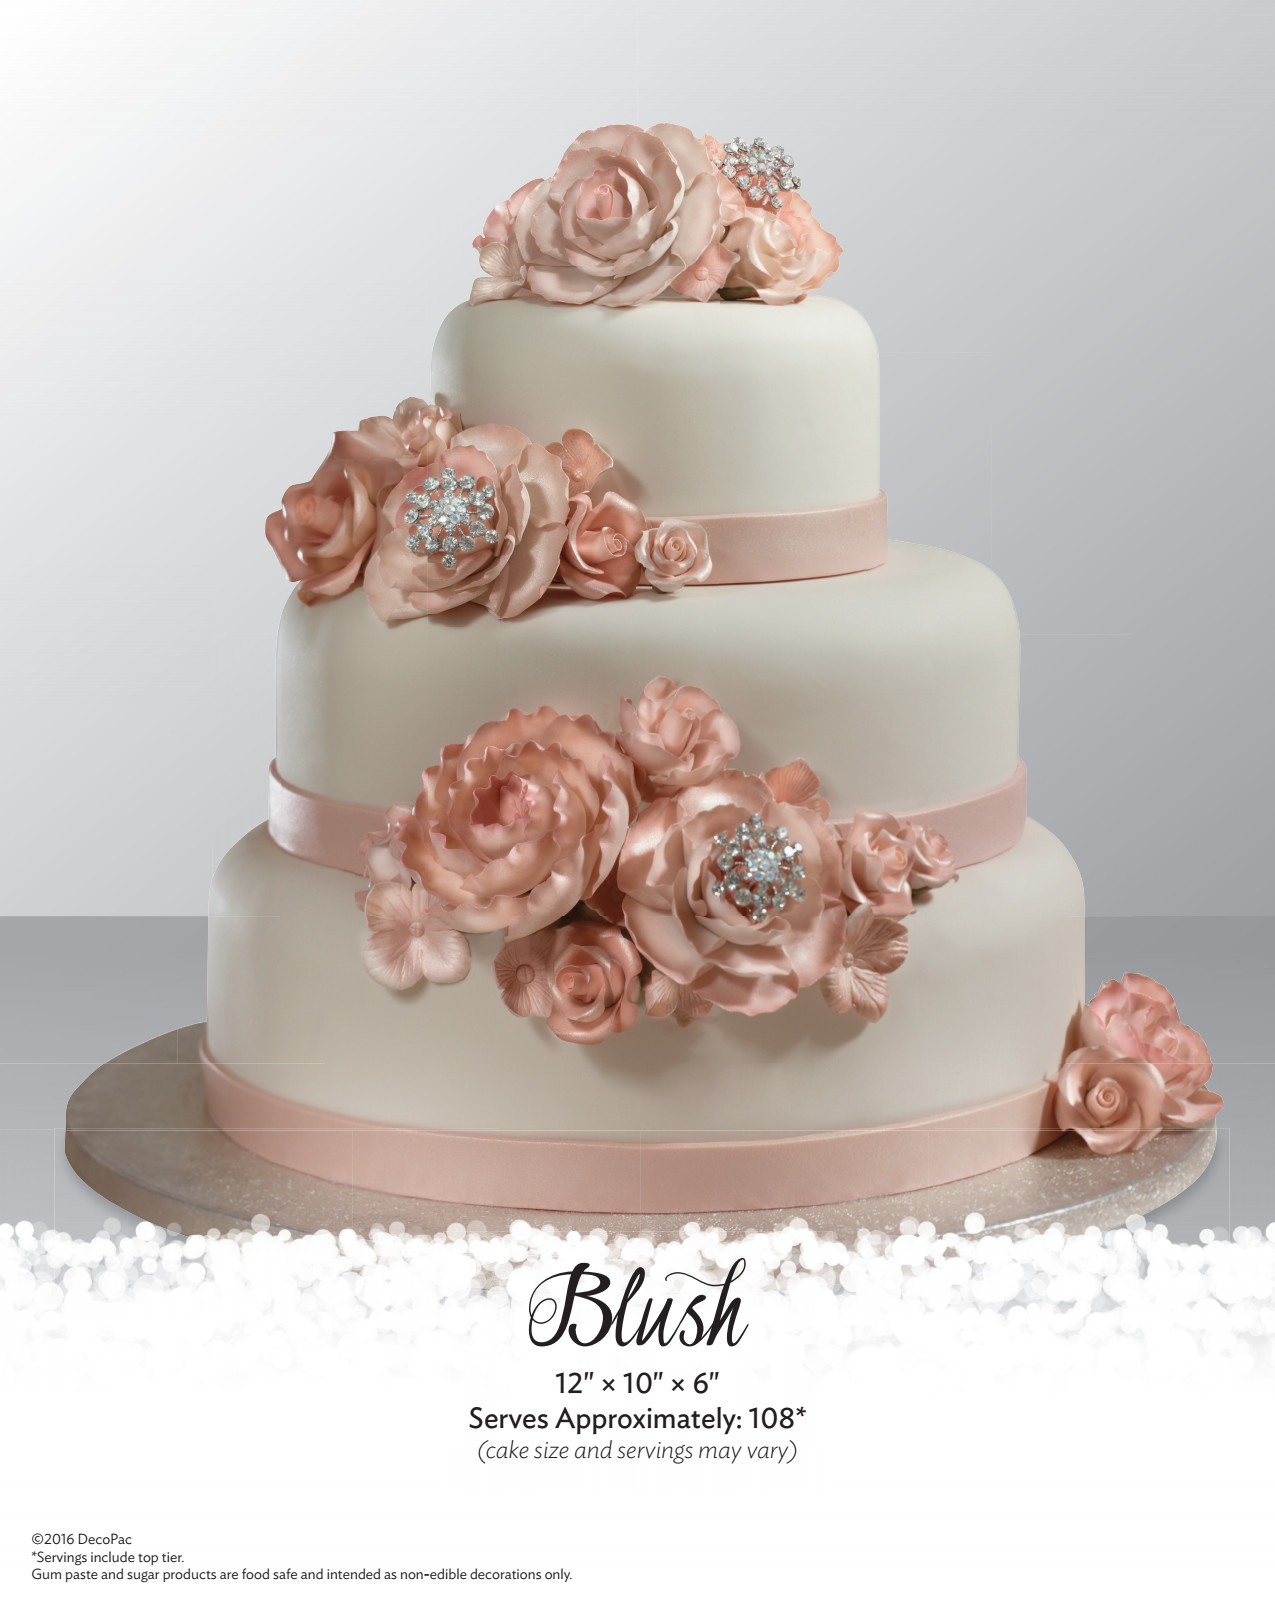 decopac wedding cakes blush stacked wedding cake the magic of cakes 174 page 13371